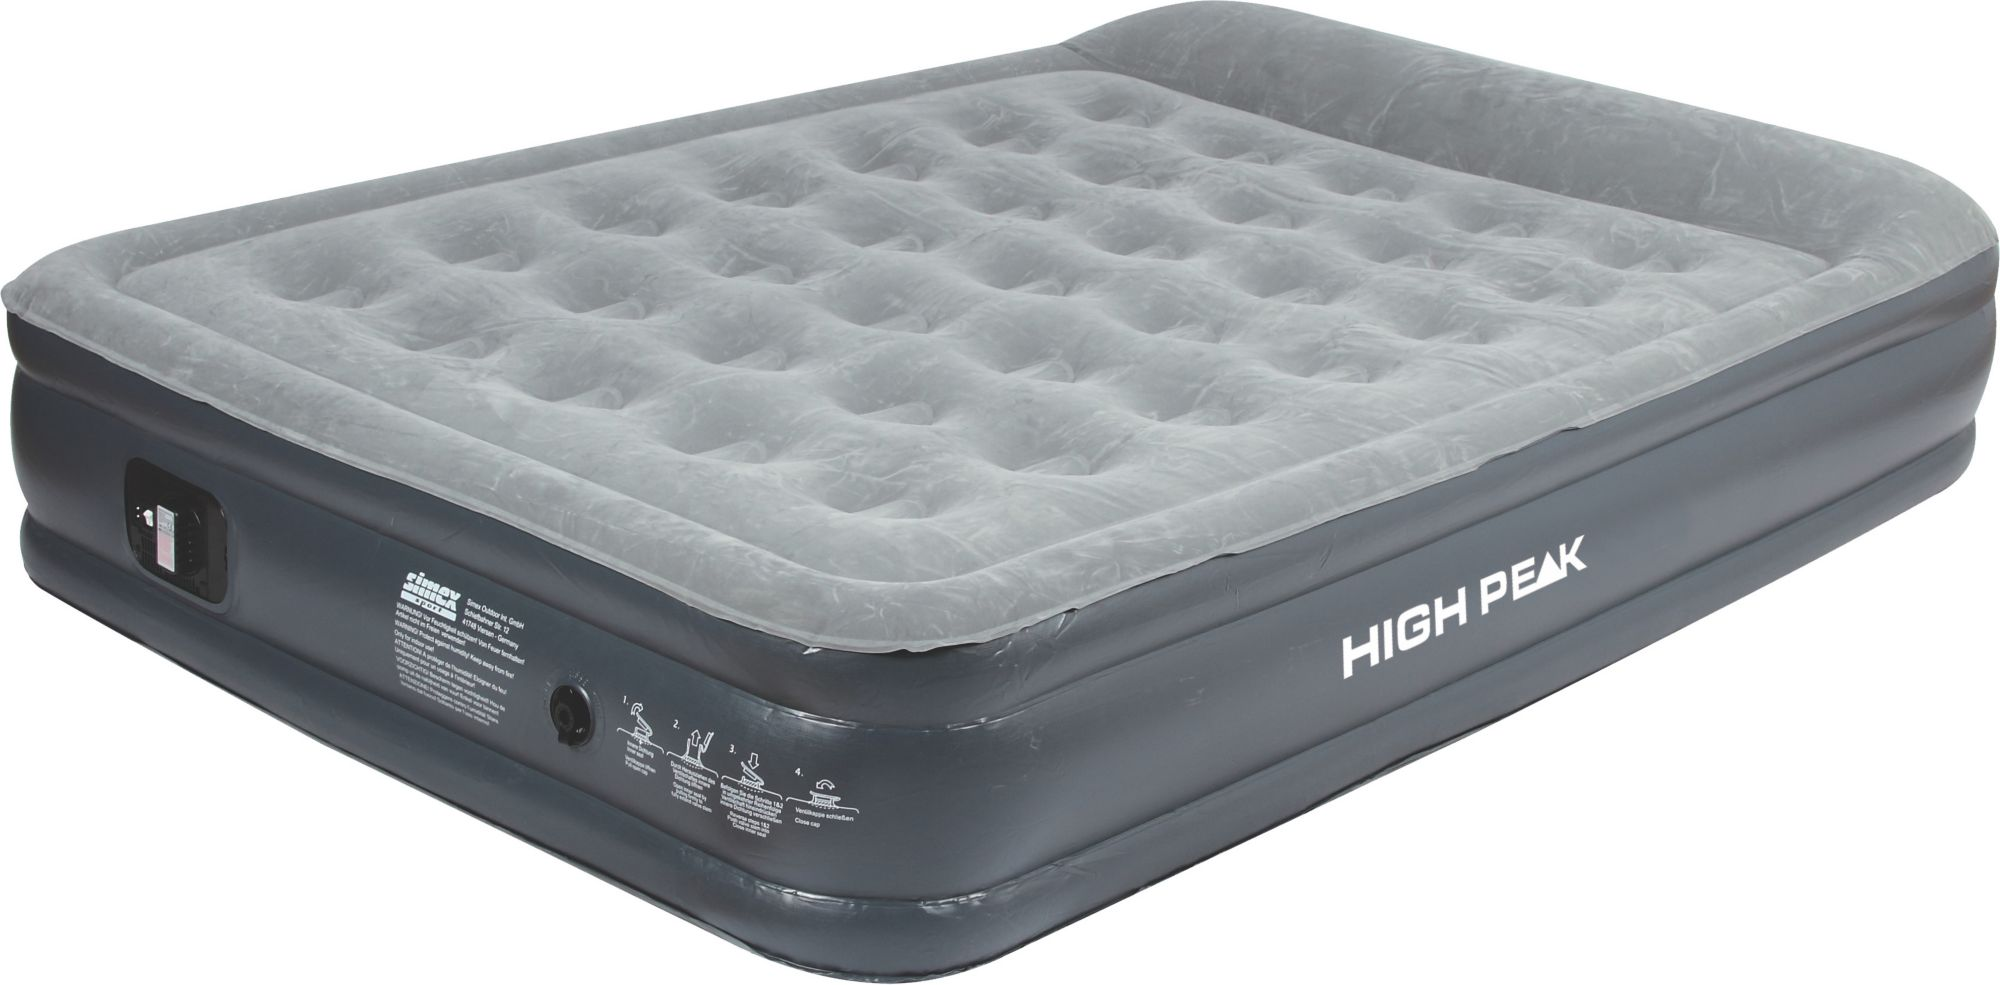 HIGH PEAK High Peak Luftbett, »Smooth Comfort Double«